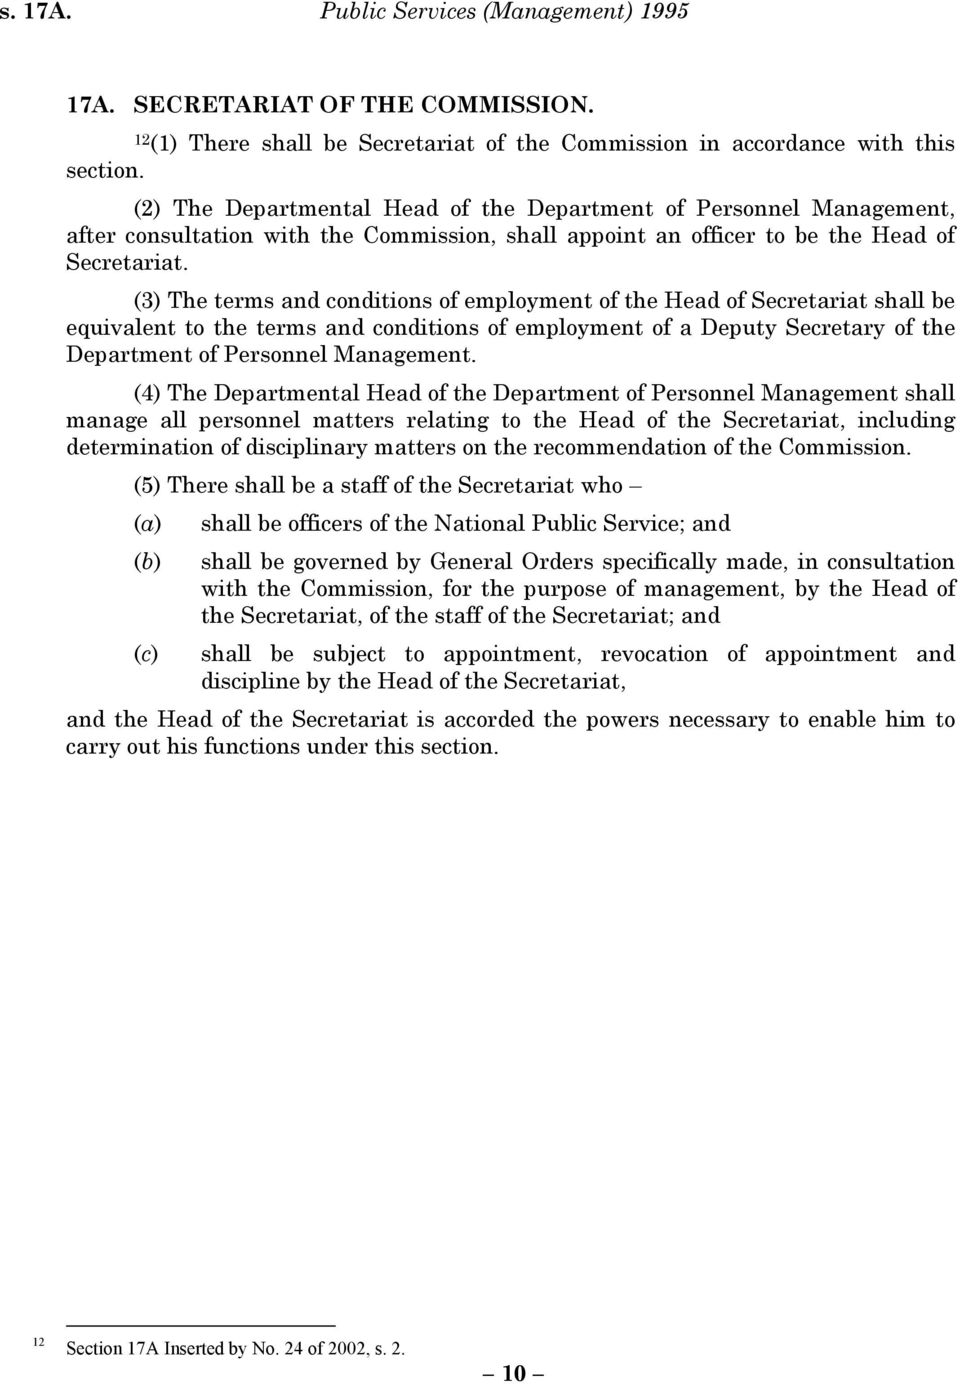 (3) The terms and conditions of employment of the Head of Secretariat shall be equivalent to the terms and conditions of employment of a Deputy Secretary of the Department of Personnel Management.